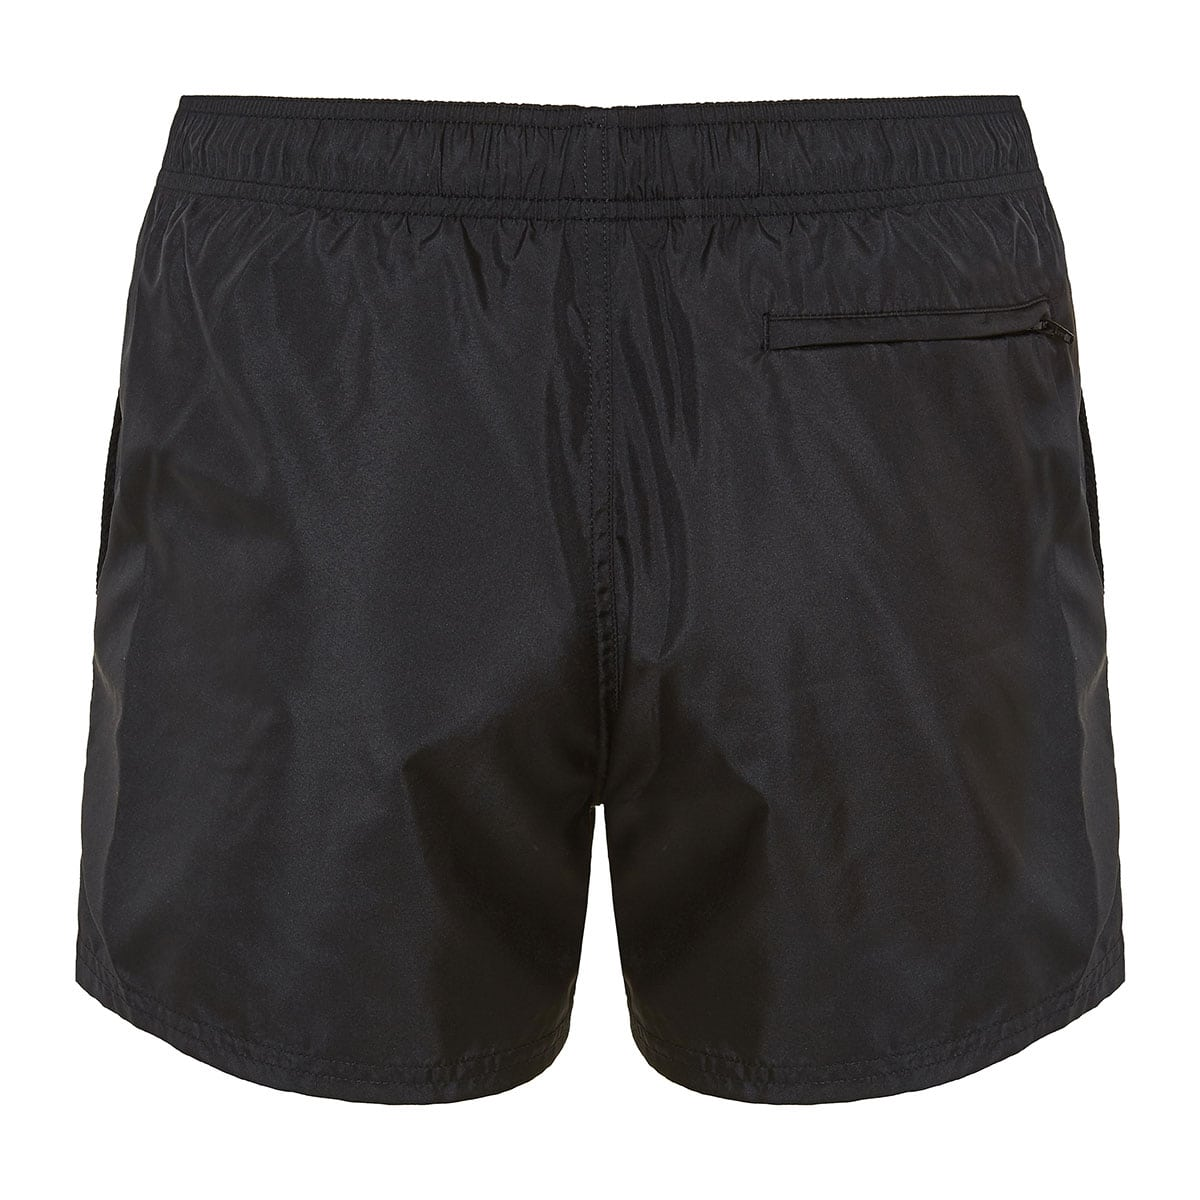 Short logo swim shorts